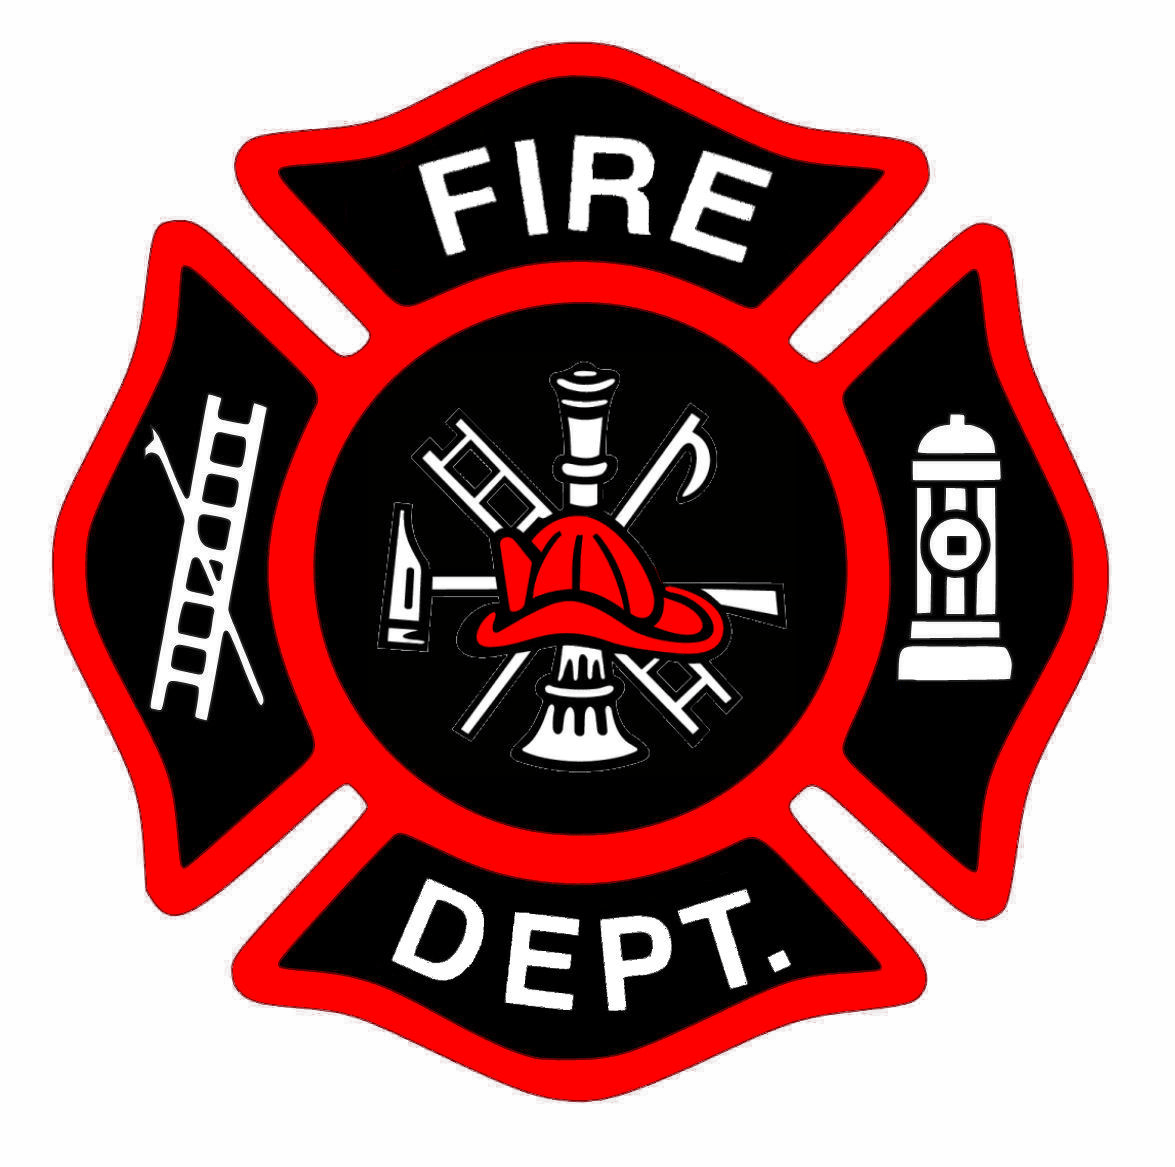 Fireman Bage New Red Hat Cut Free Images At Clker Com